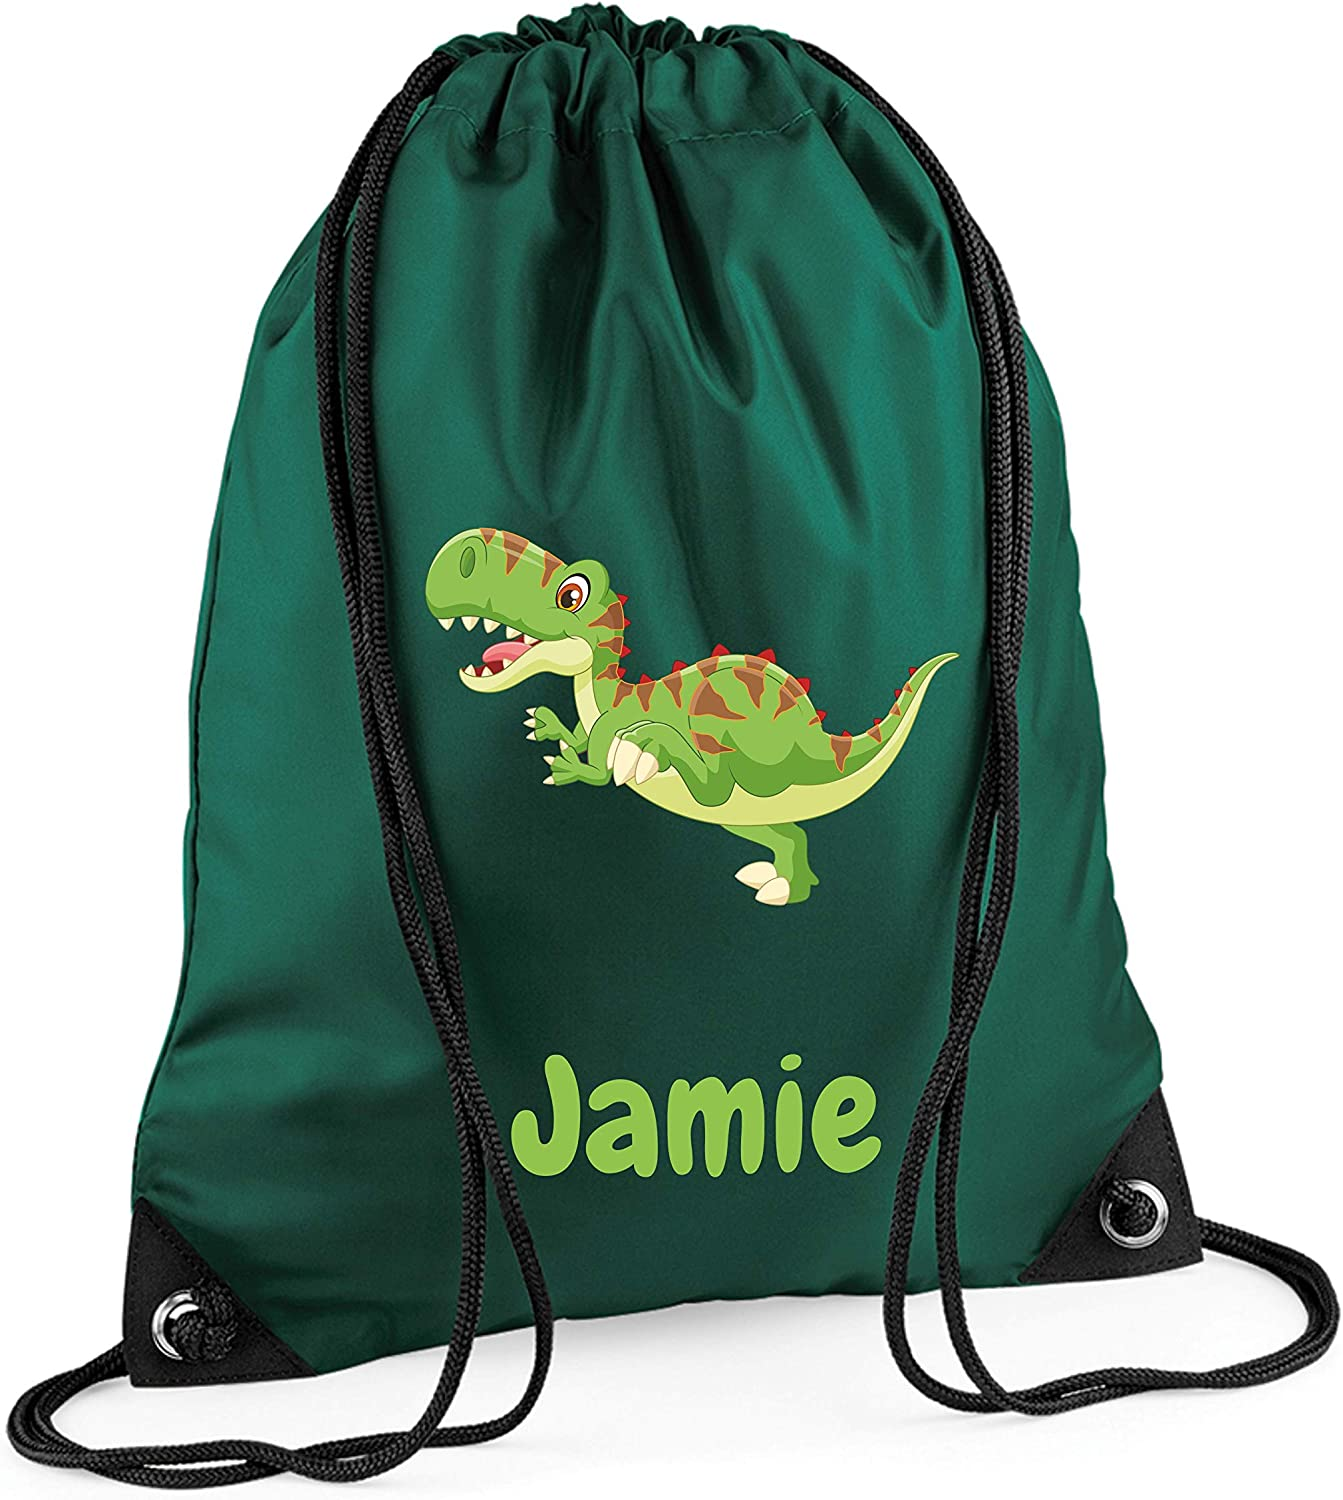 add child/'s name Personalised dinosaur sports kit bag Drawstring PE school